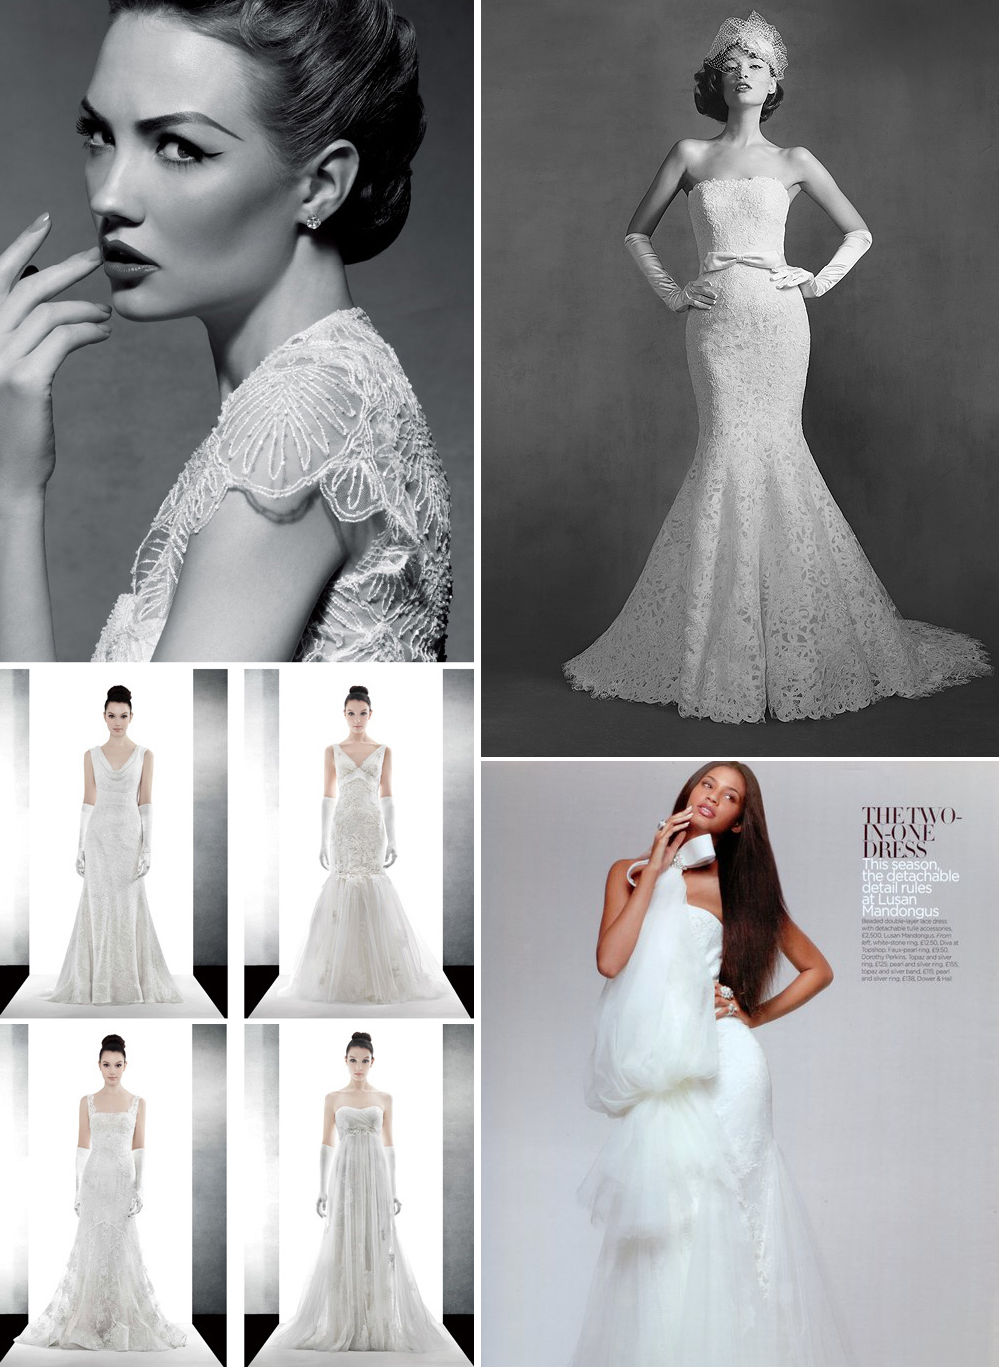 Elegant bridal gowns vintage inspired lace for Vintage inspired lace wedding dresses